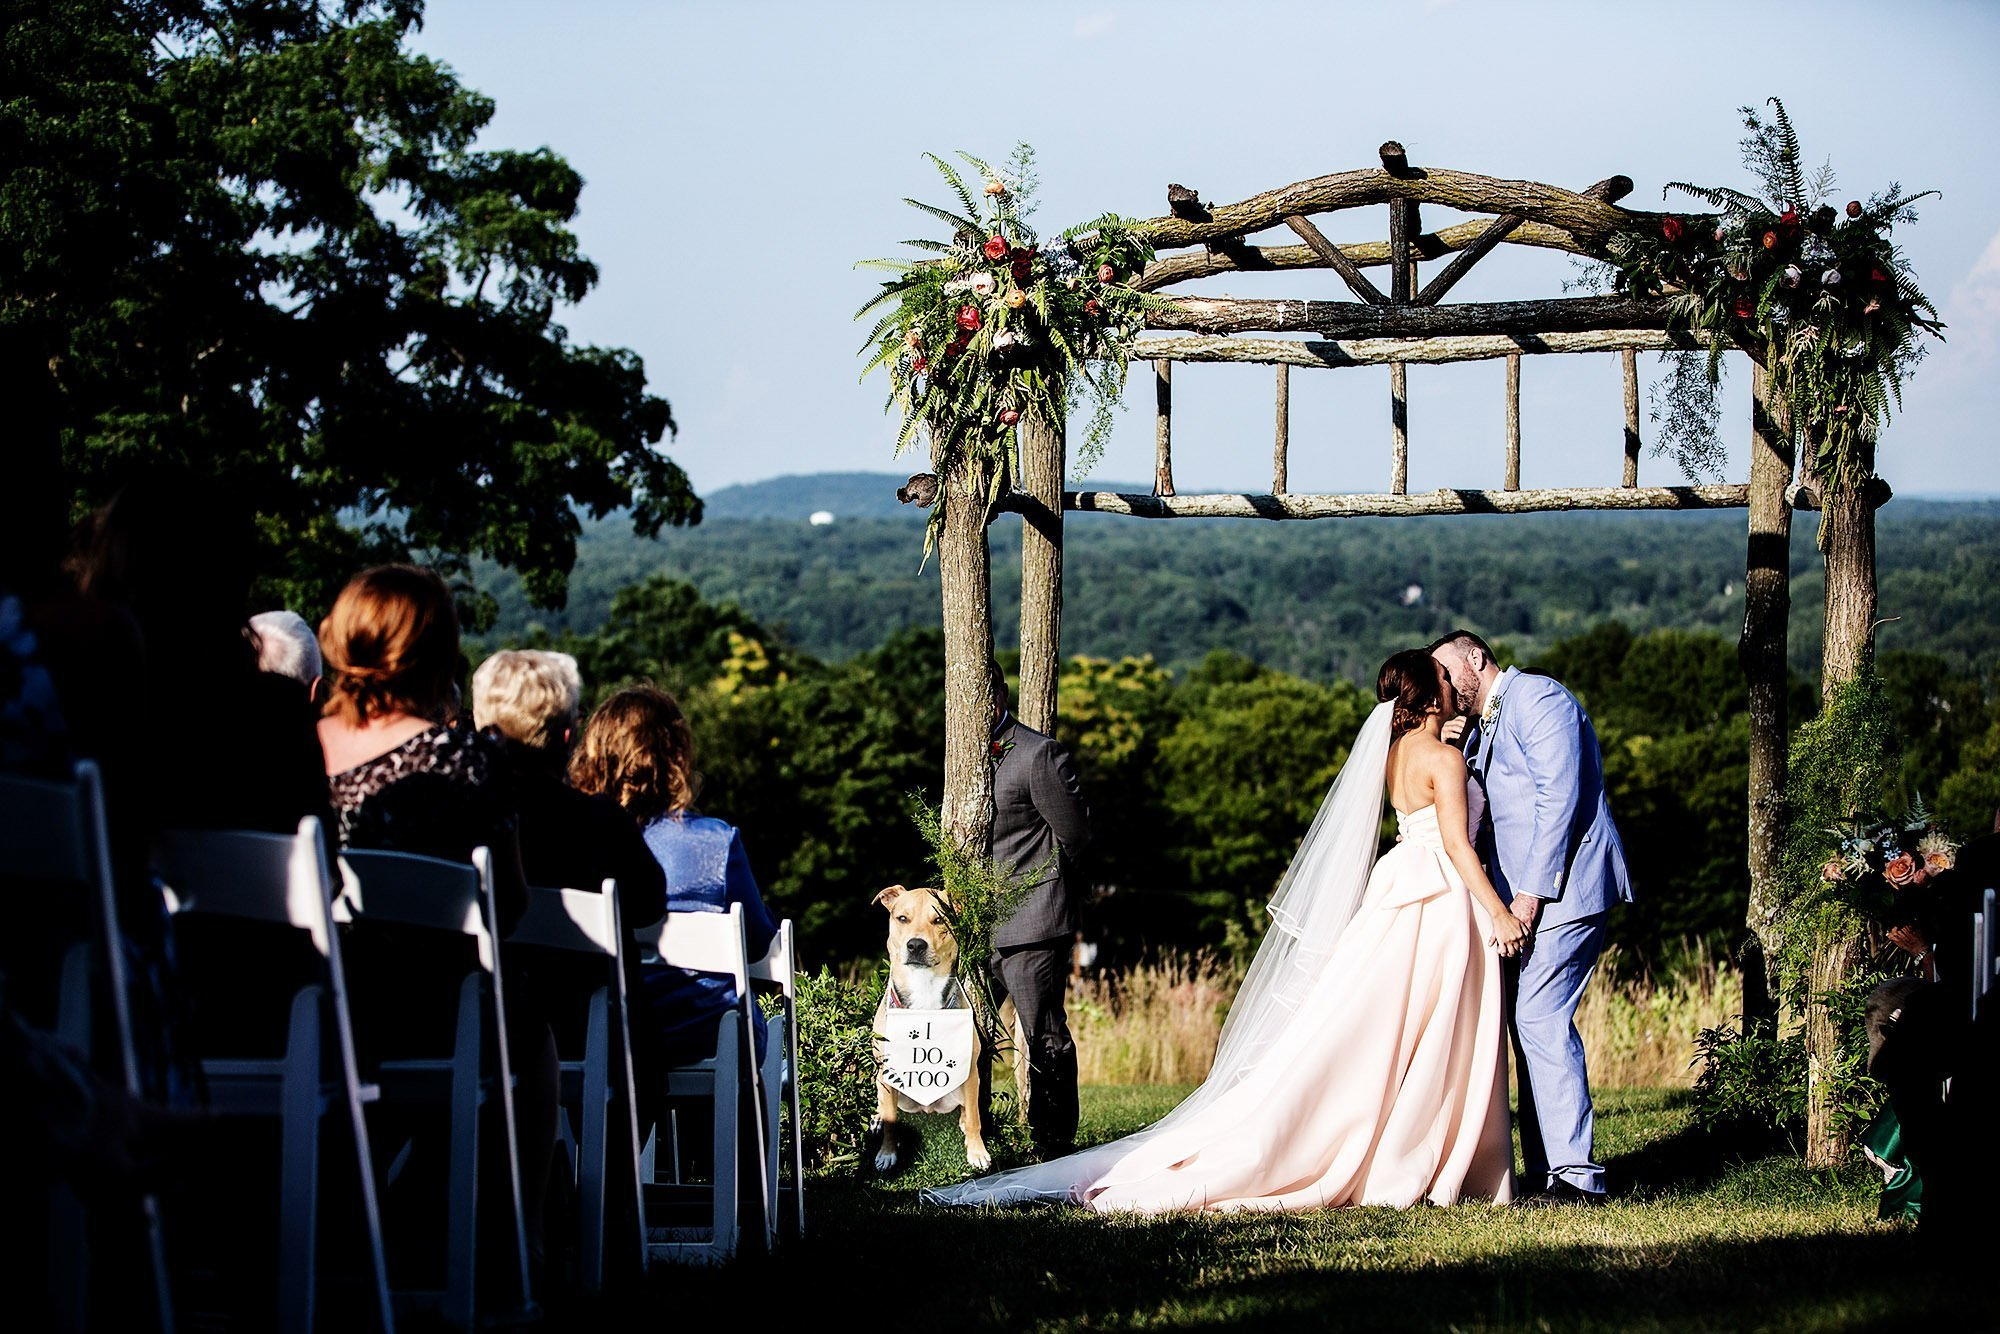 Red Maple Vineyard Wedding  I  The bride and groom share their first kiss during their outdoor wedding ceremony in Upstate New York.